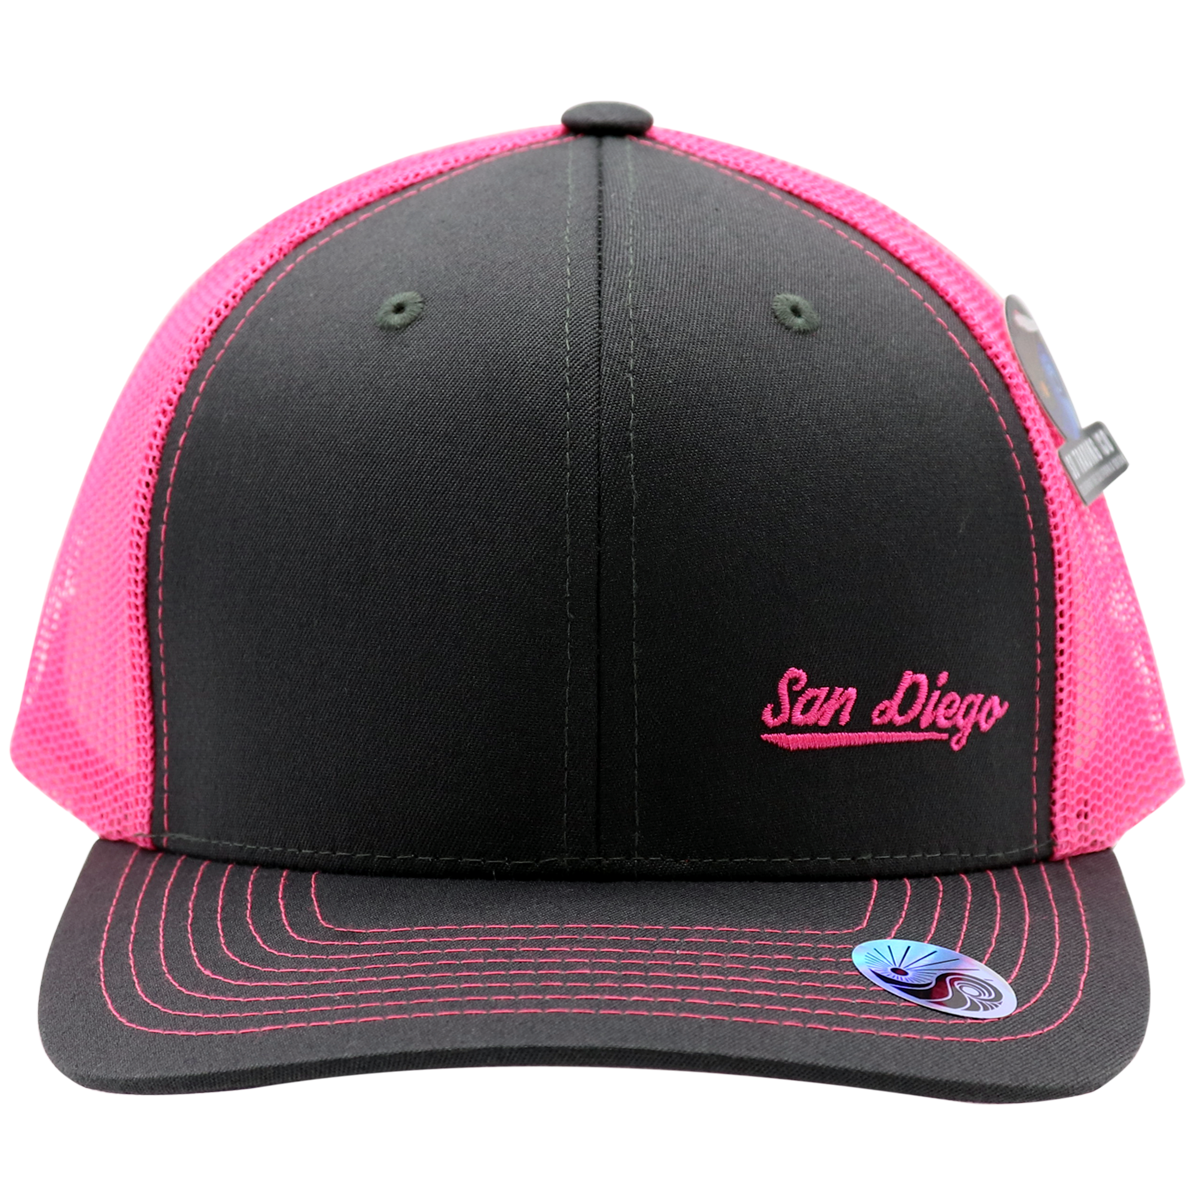 Adult trucker hat for men or women. Solid gray front with neon hot fuchsia pink mesh that is cool and breathable for summer hot days. Embroidery San Diego on bottom left front corner and California. Spring break, coachella, las vegas, LGBTQ, spring, beach attire. Trendy poplar pop of neon color. Adjustable Snap back.